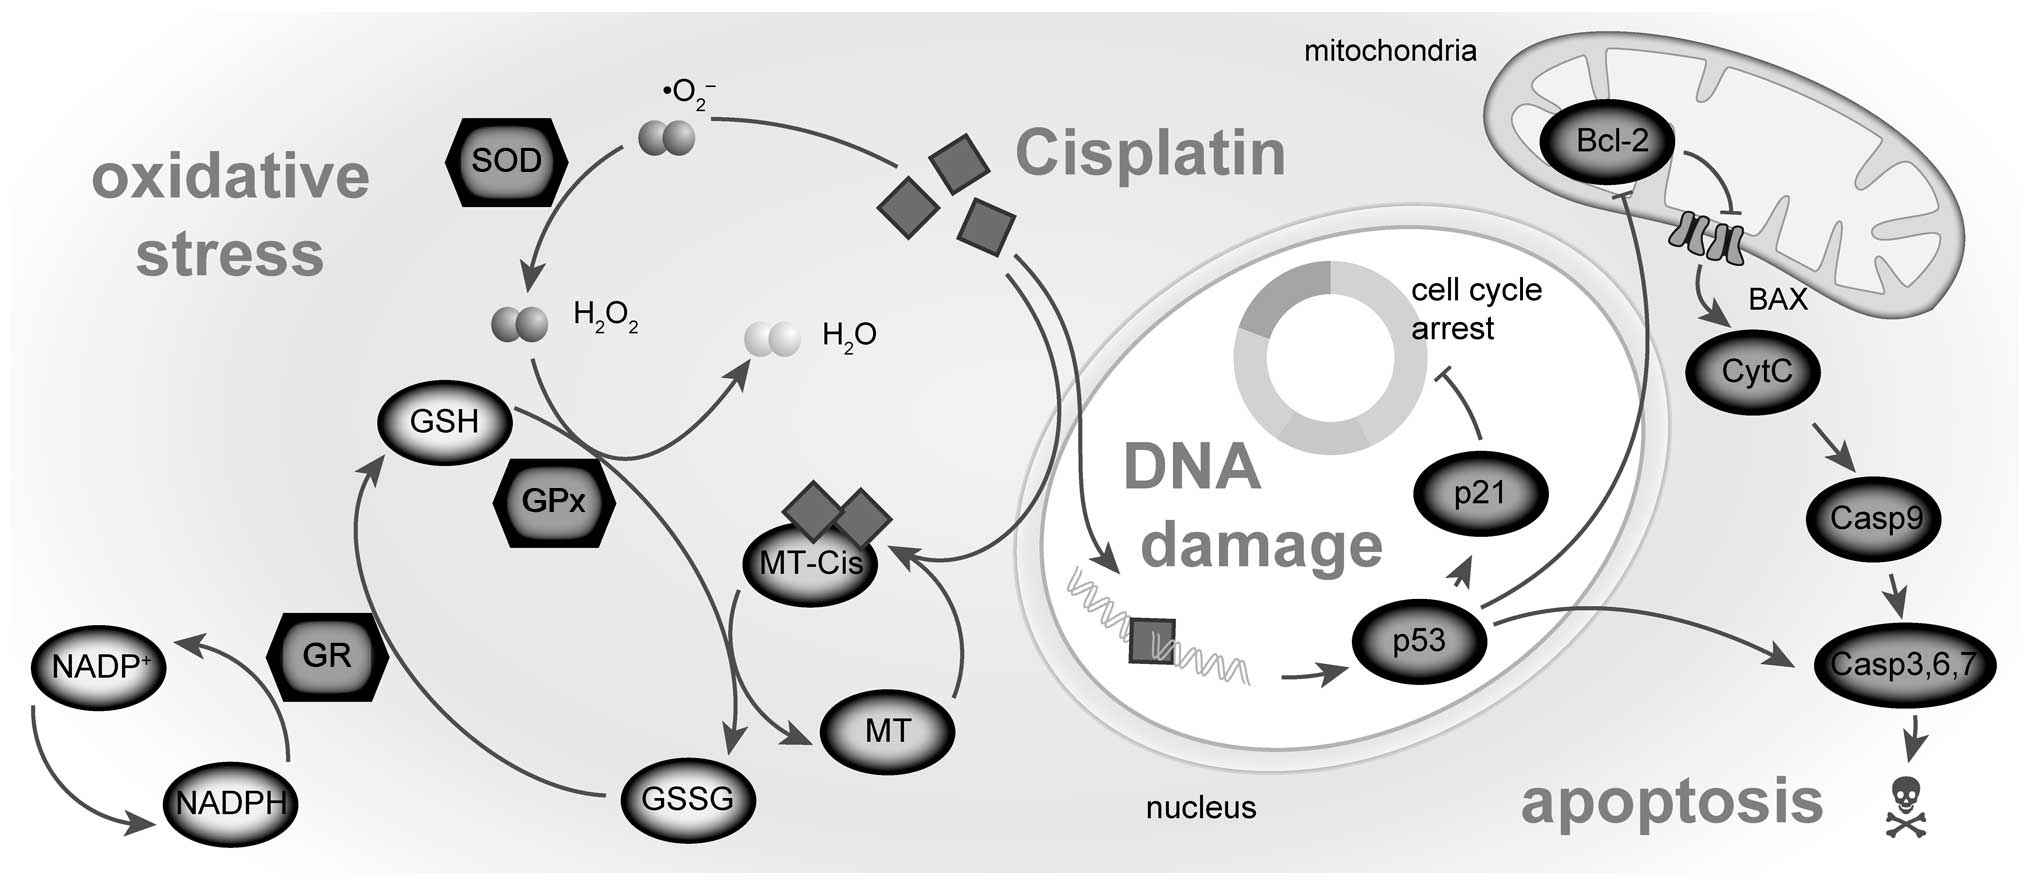 Apoptosis: Events, Mechanism and Importance | Cell Cycle